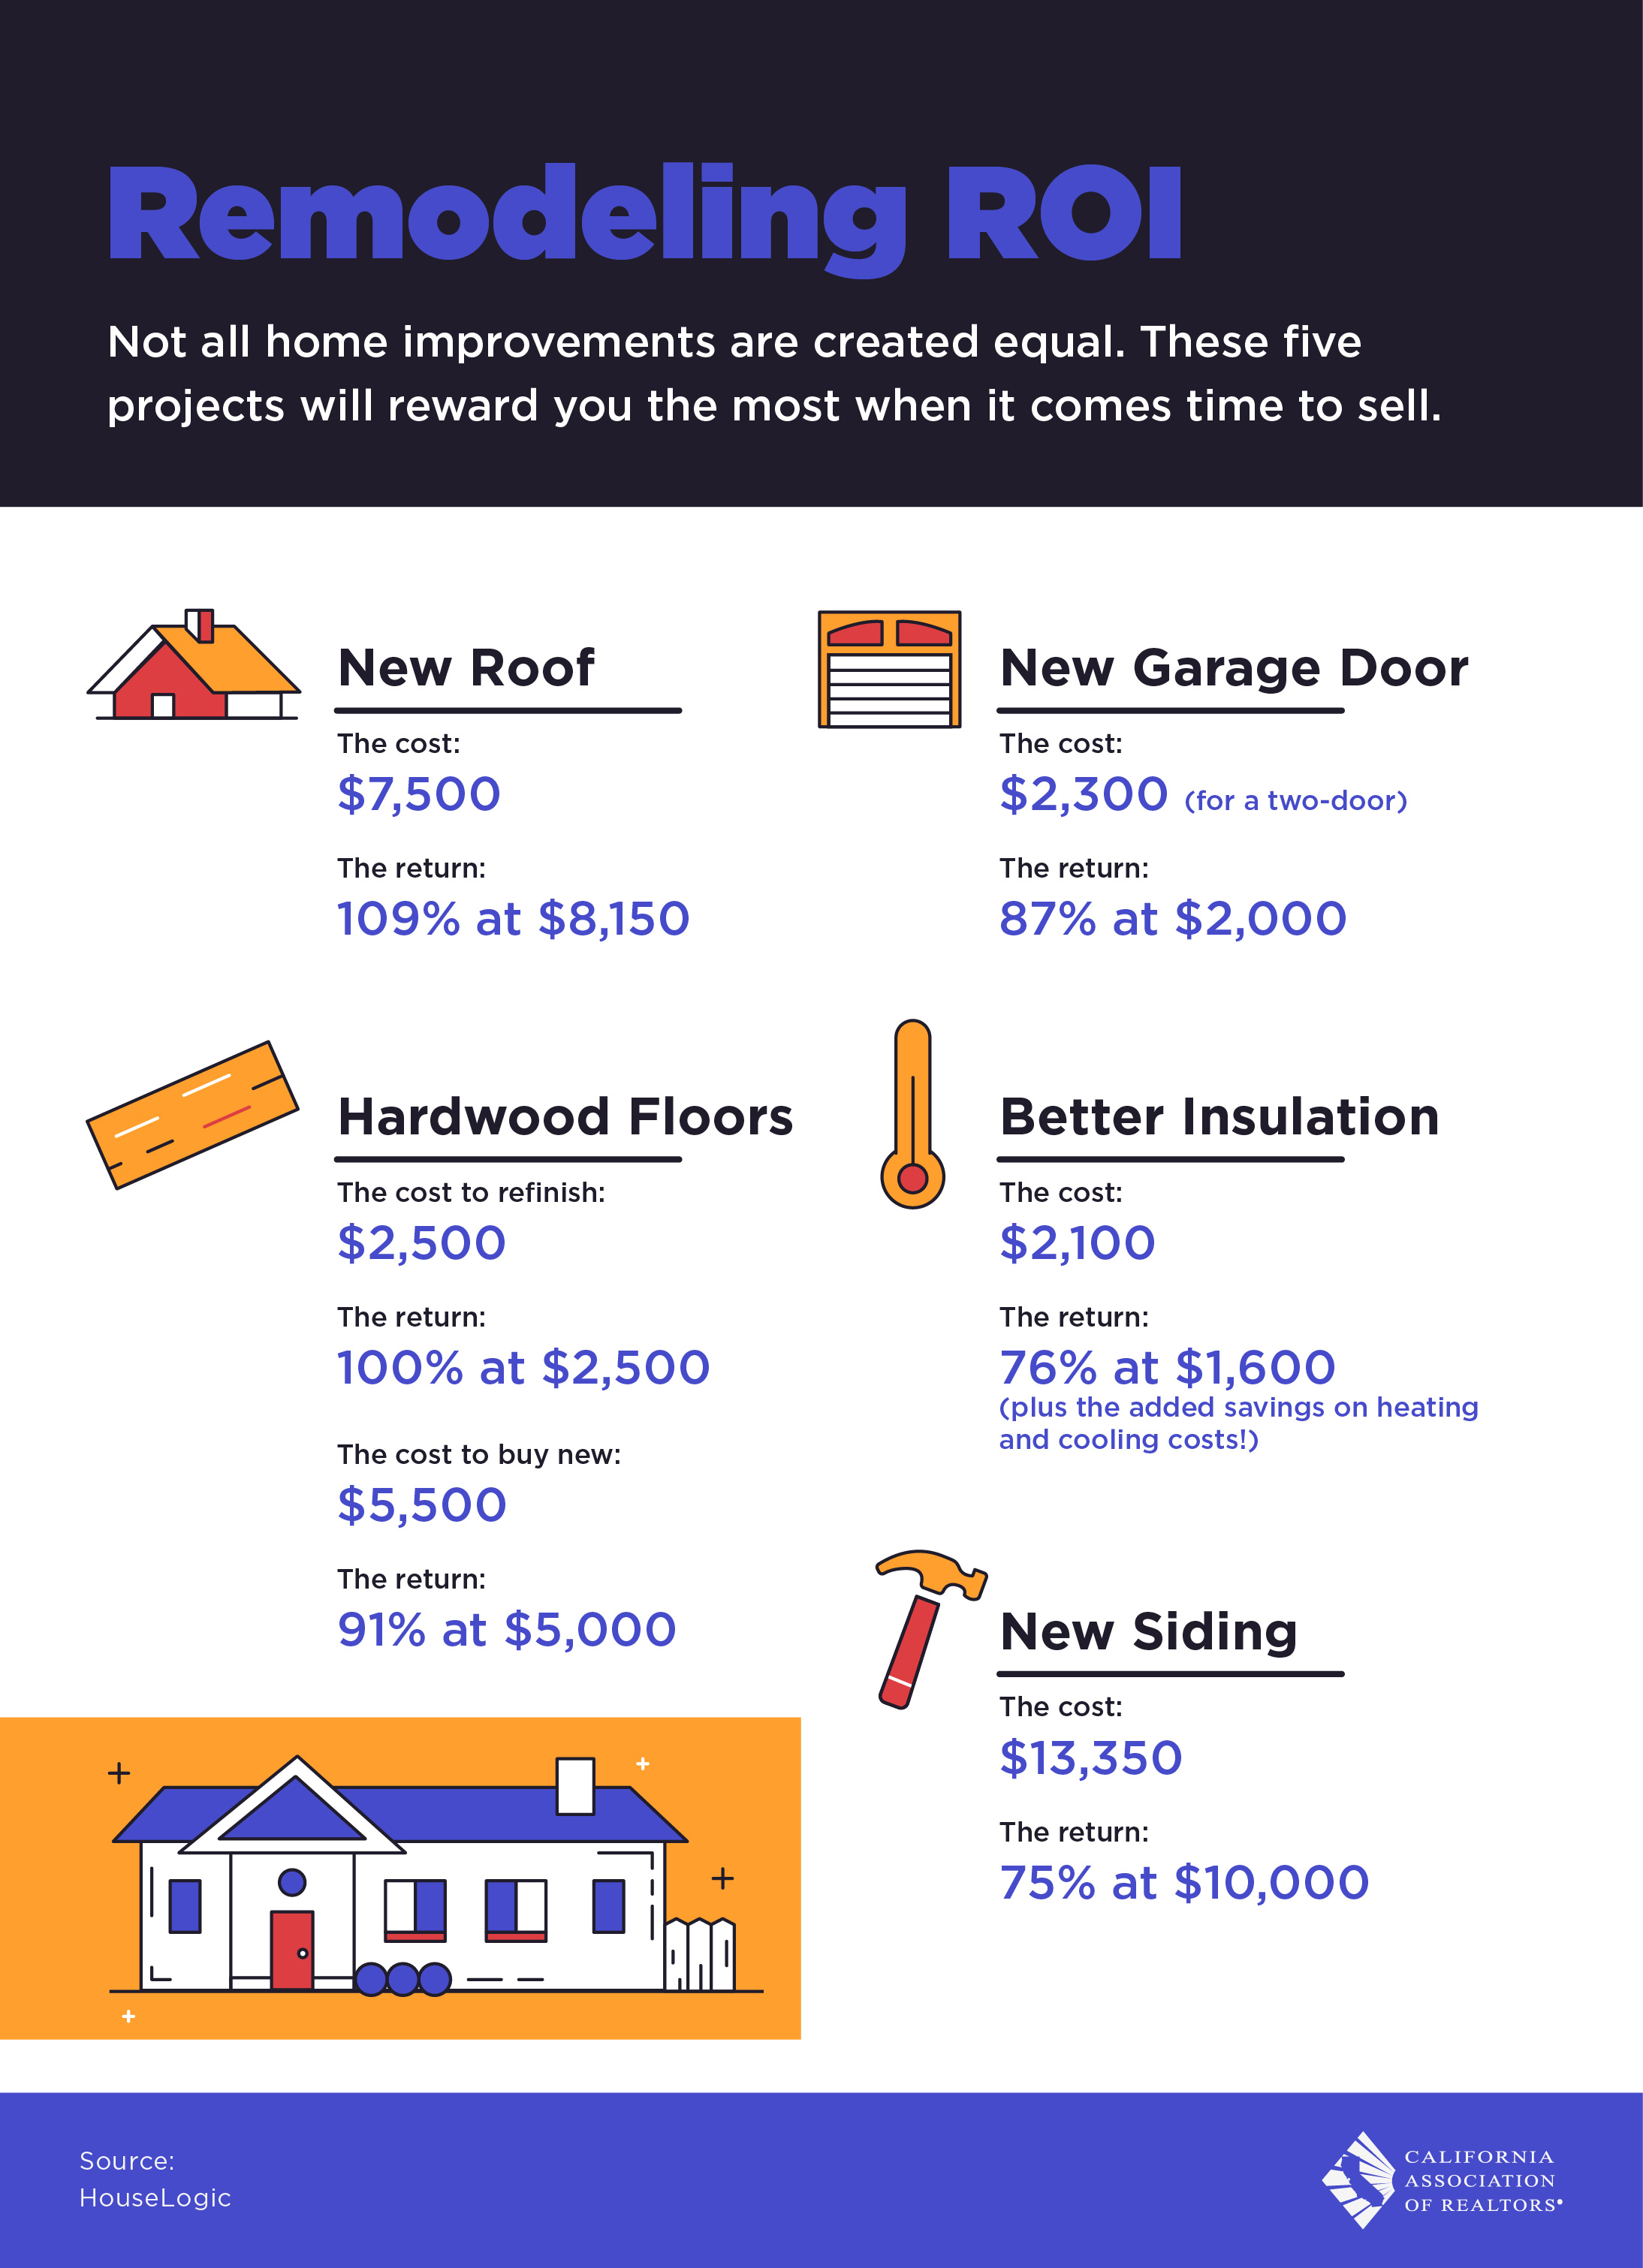 Remodeling ROI